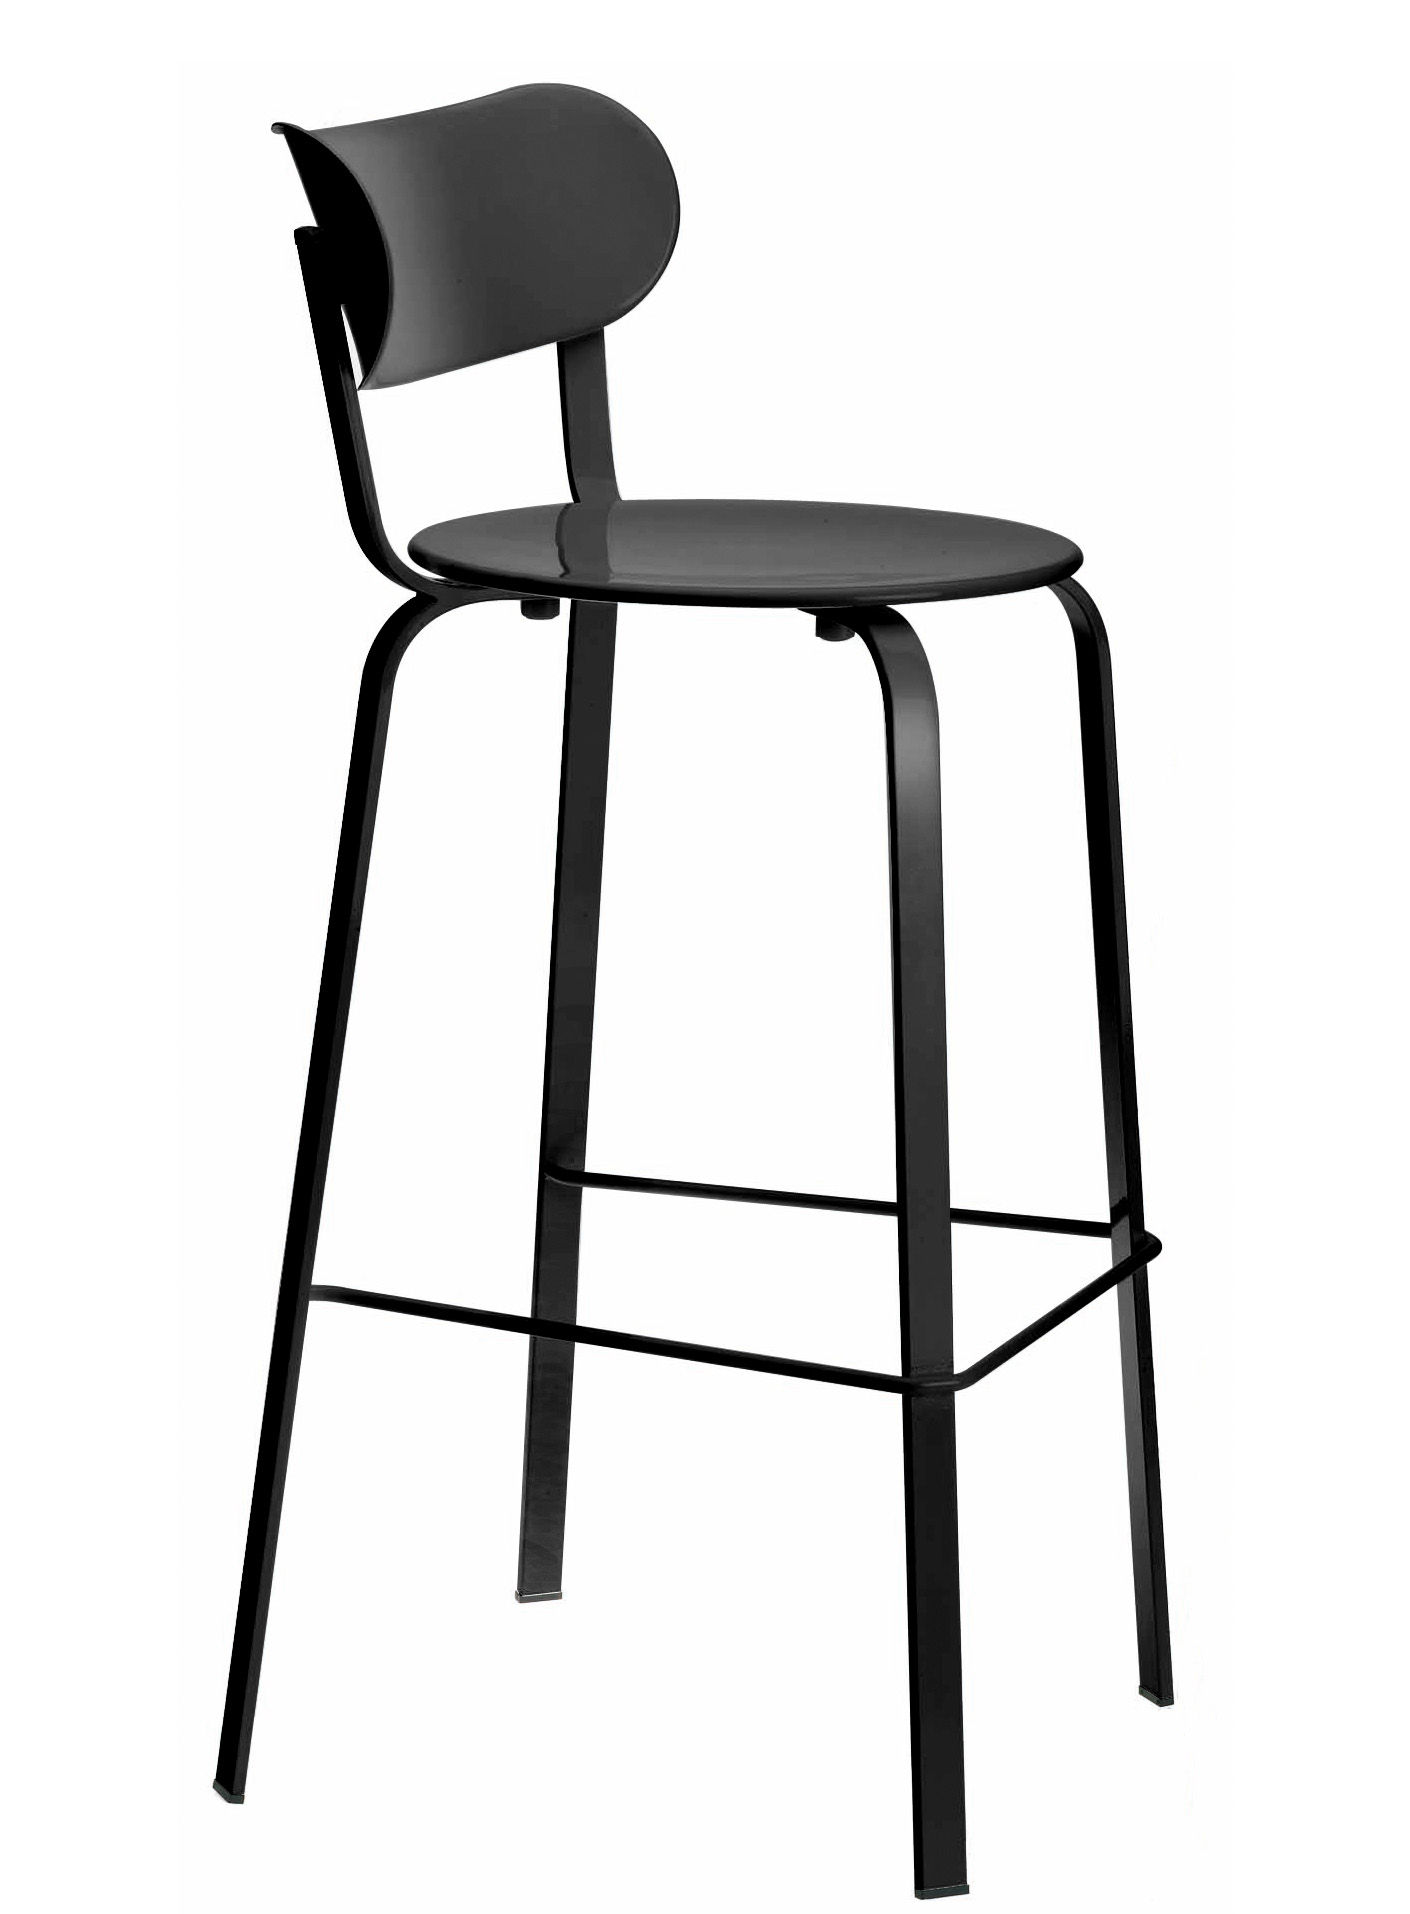 Furniture - Bar Stools - Stil Bar chair - H 75 cm - Metal by Lapalma - Black lacquered metal - Lacquered metal